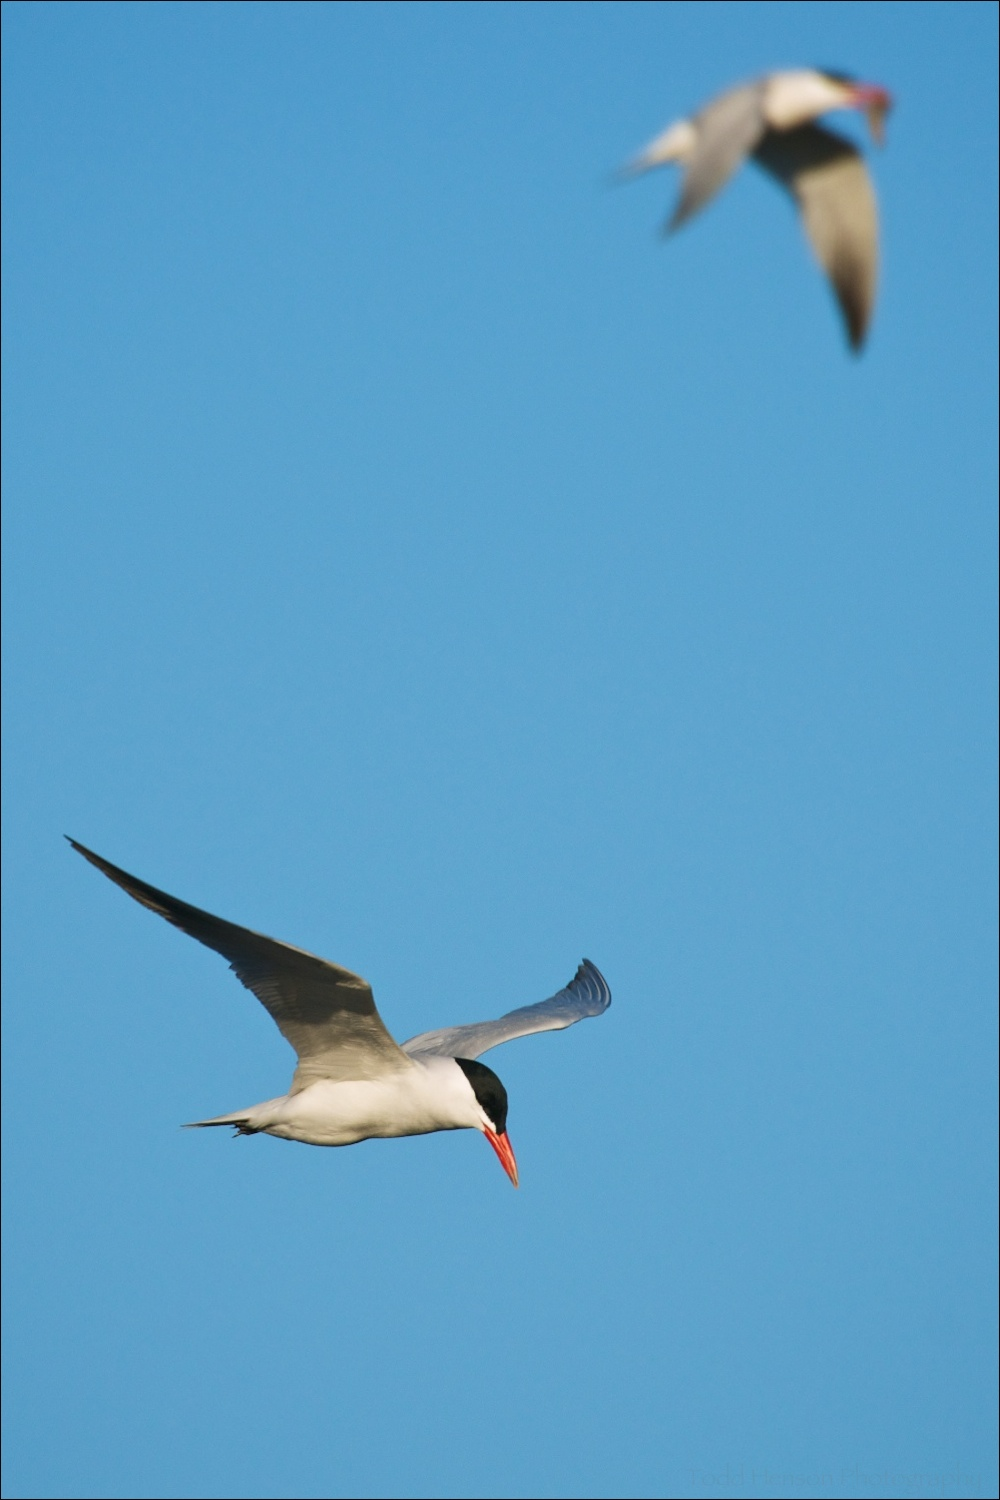 Pair of Caspian Tern in flight. The out of focus Tern in the background is carrying a fish.